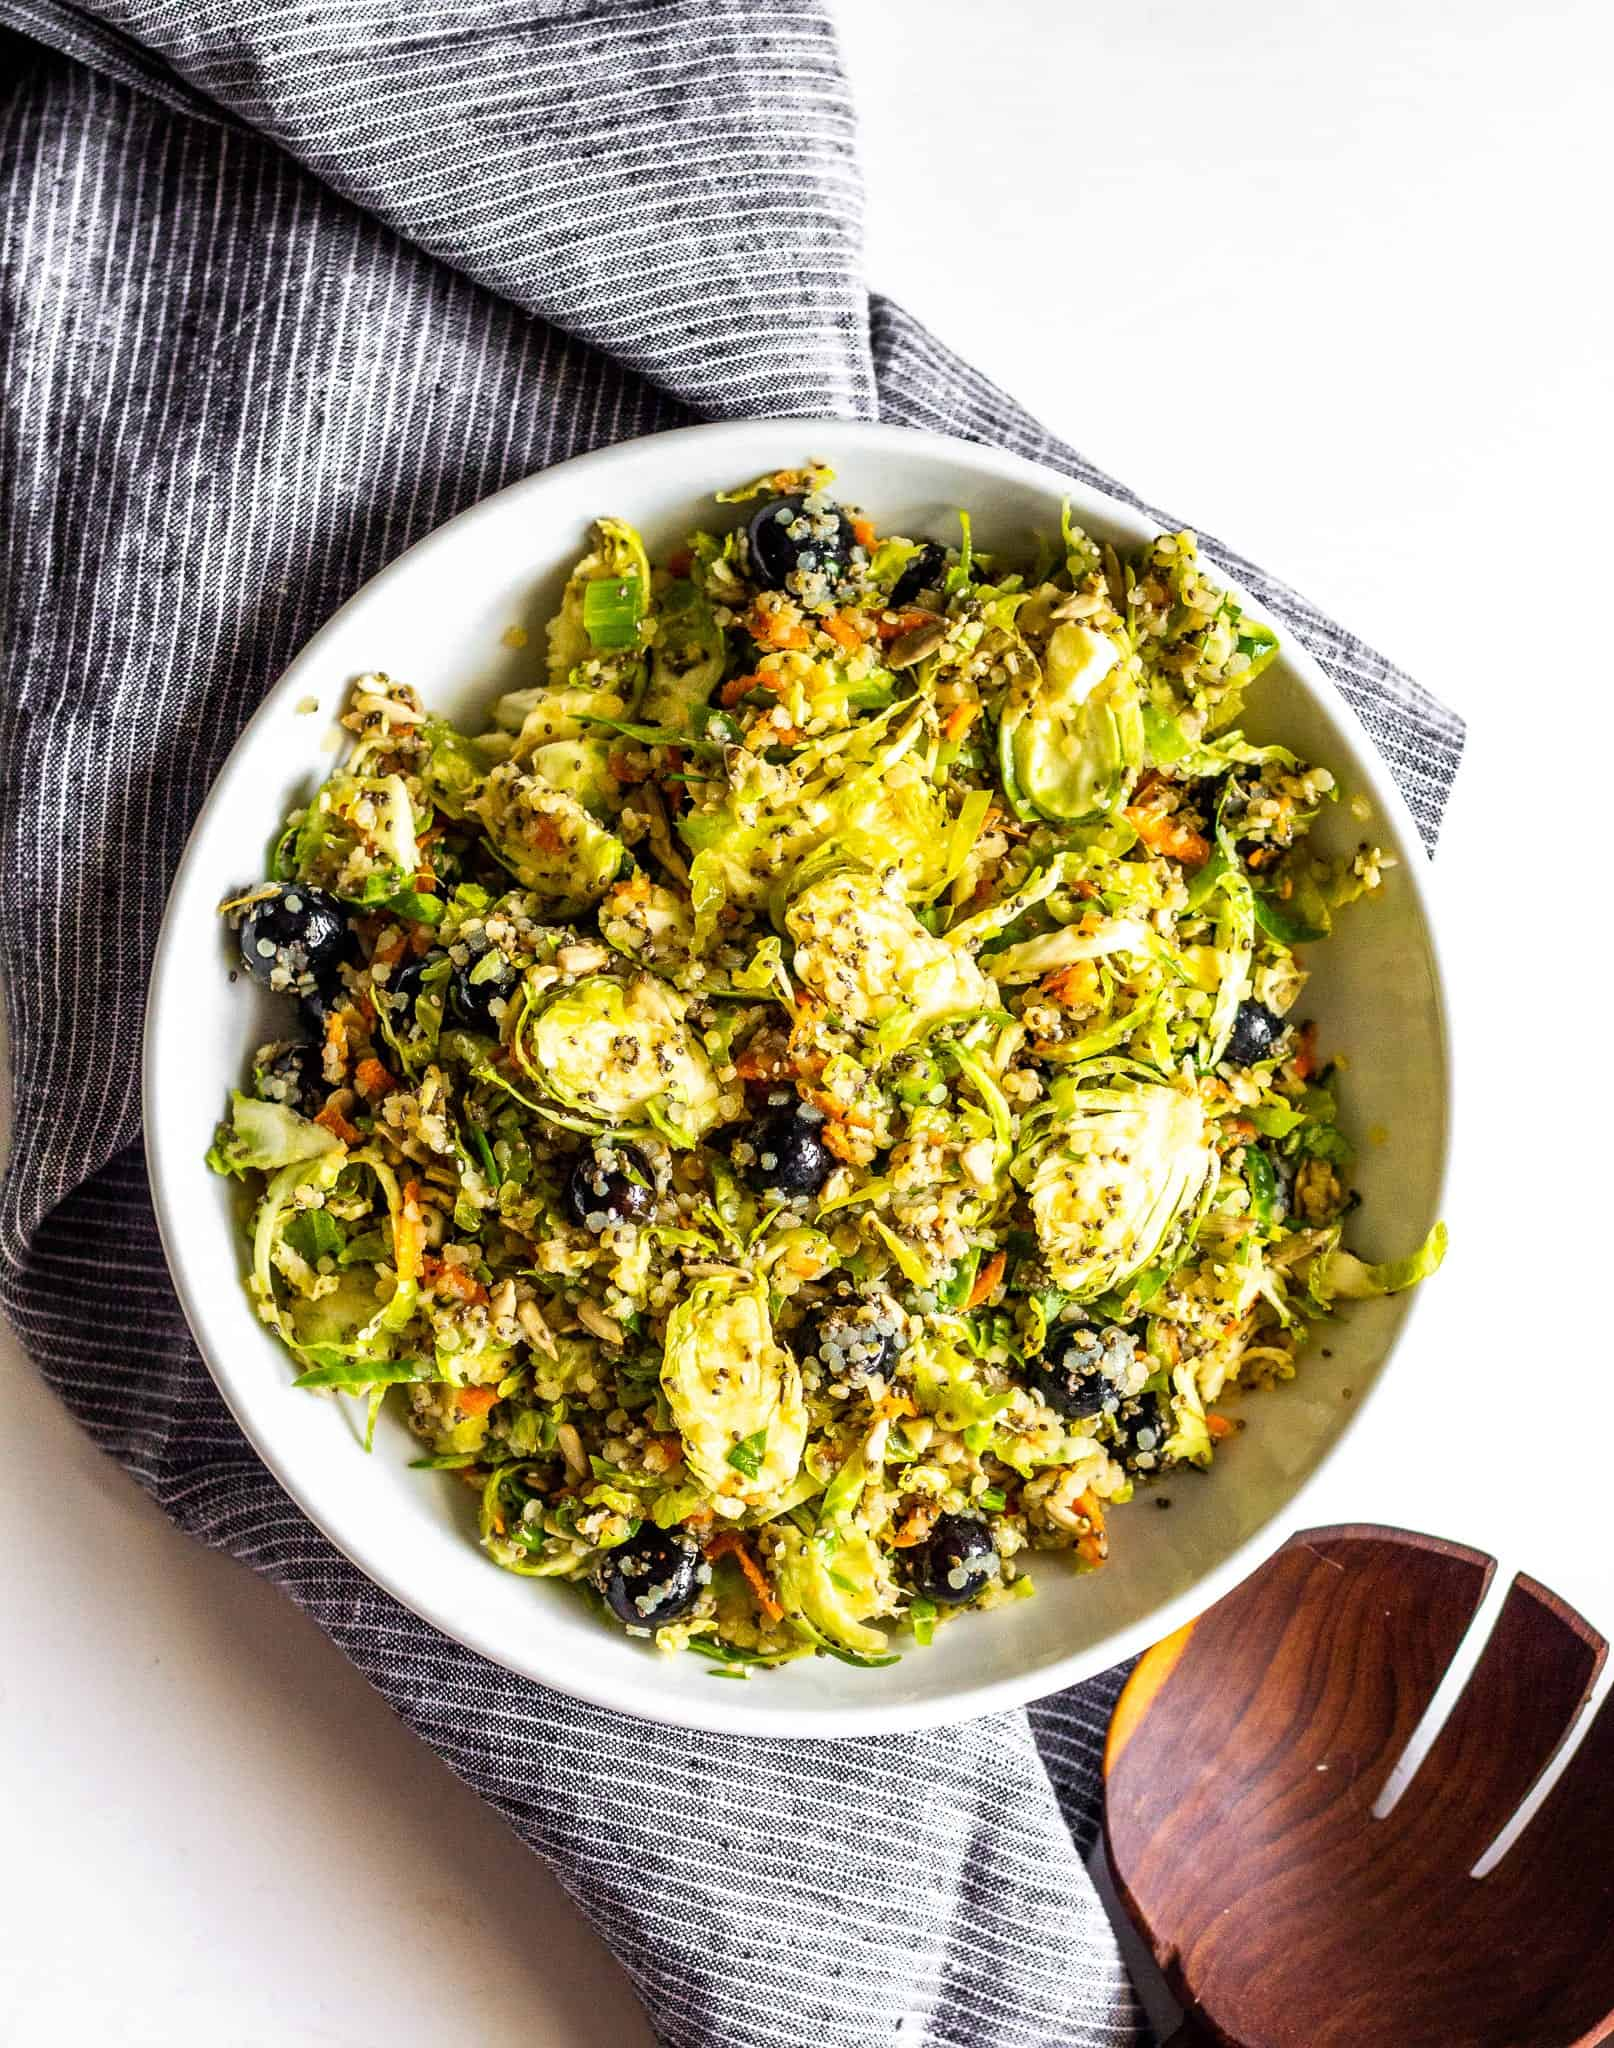 Shredded Brussels Sprouts Salad with Blueberries and Quinoa #healthy #tararochfordnutrition #glutenfree #dairyfree #allergenfree